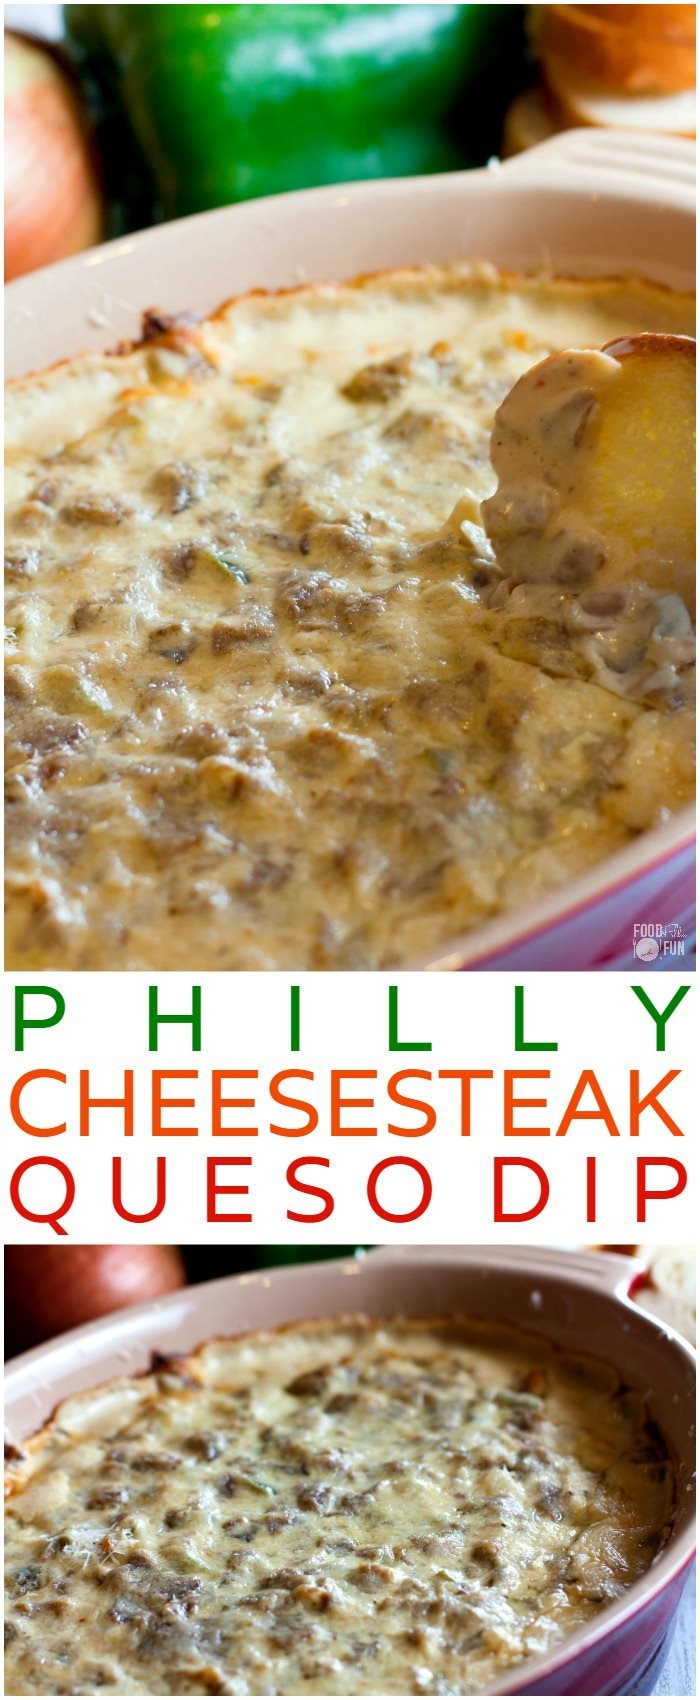 This hot, cheesy Philly Cheesesteak Dip is one of the best queso dips I have EVER had. It's easy to make and it's perfect for game day!